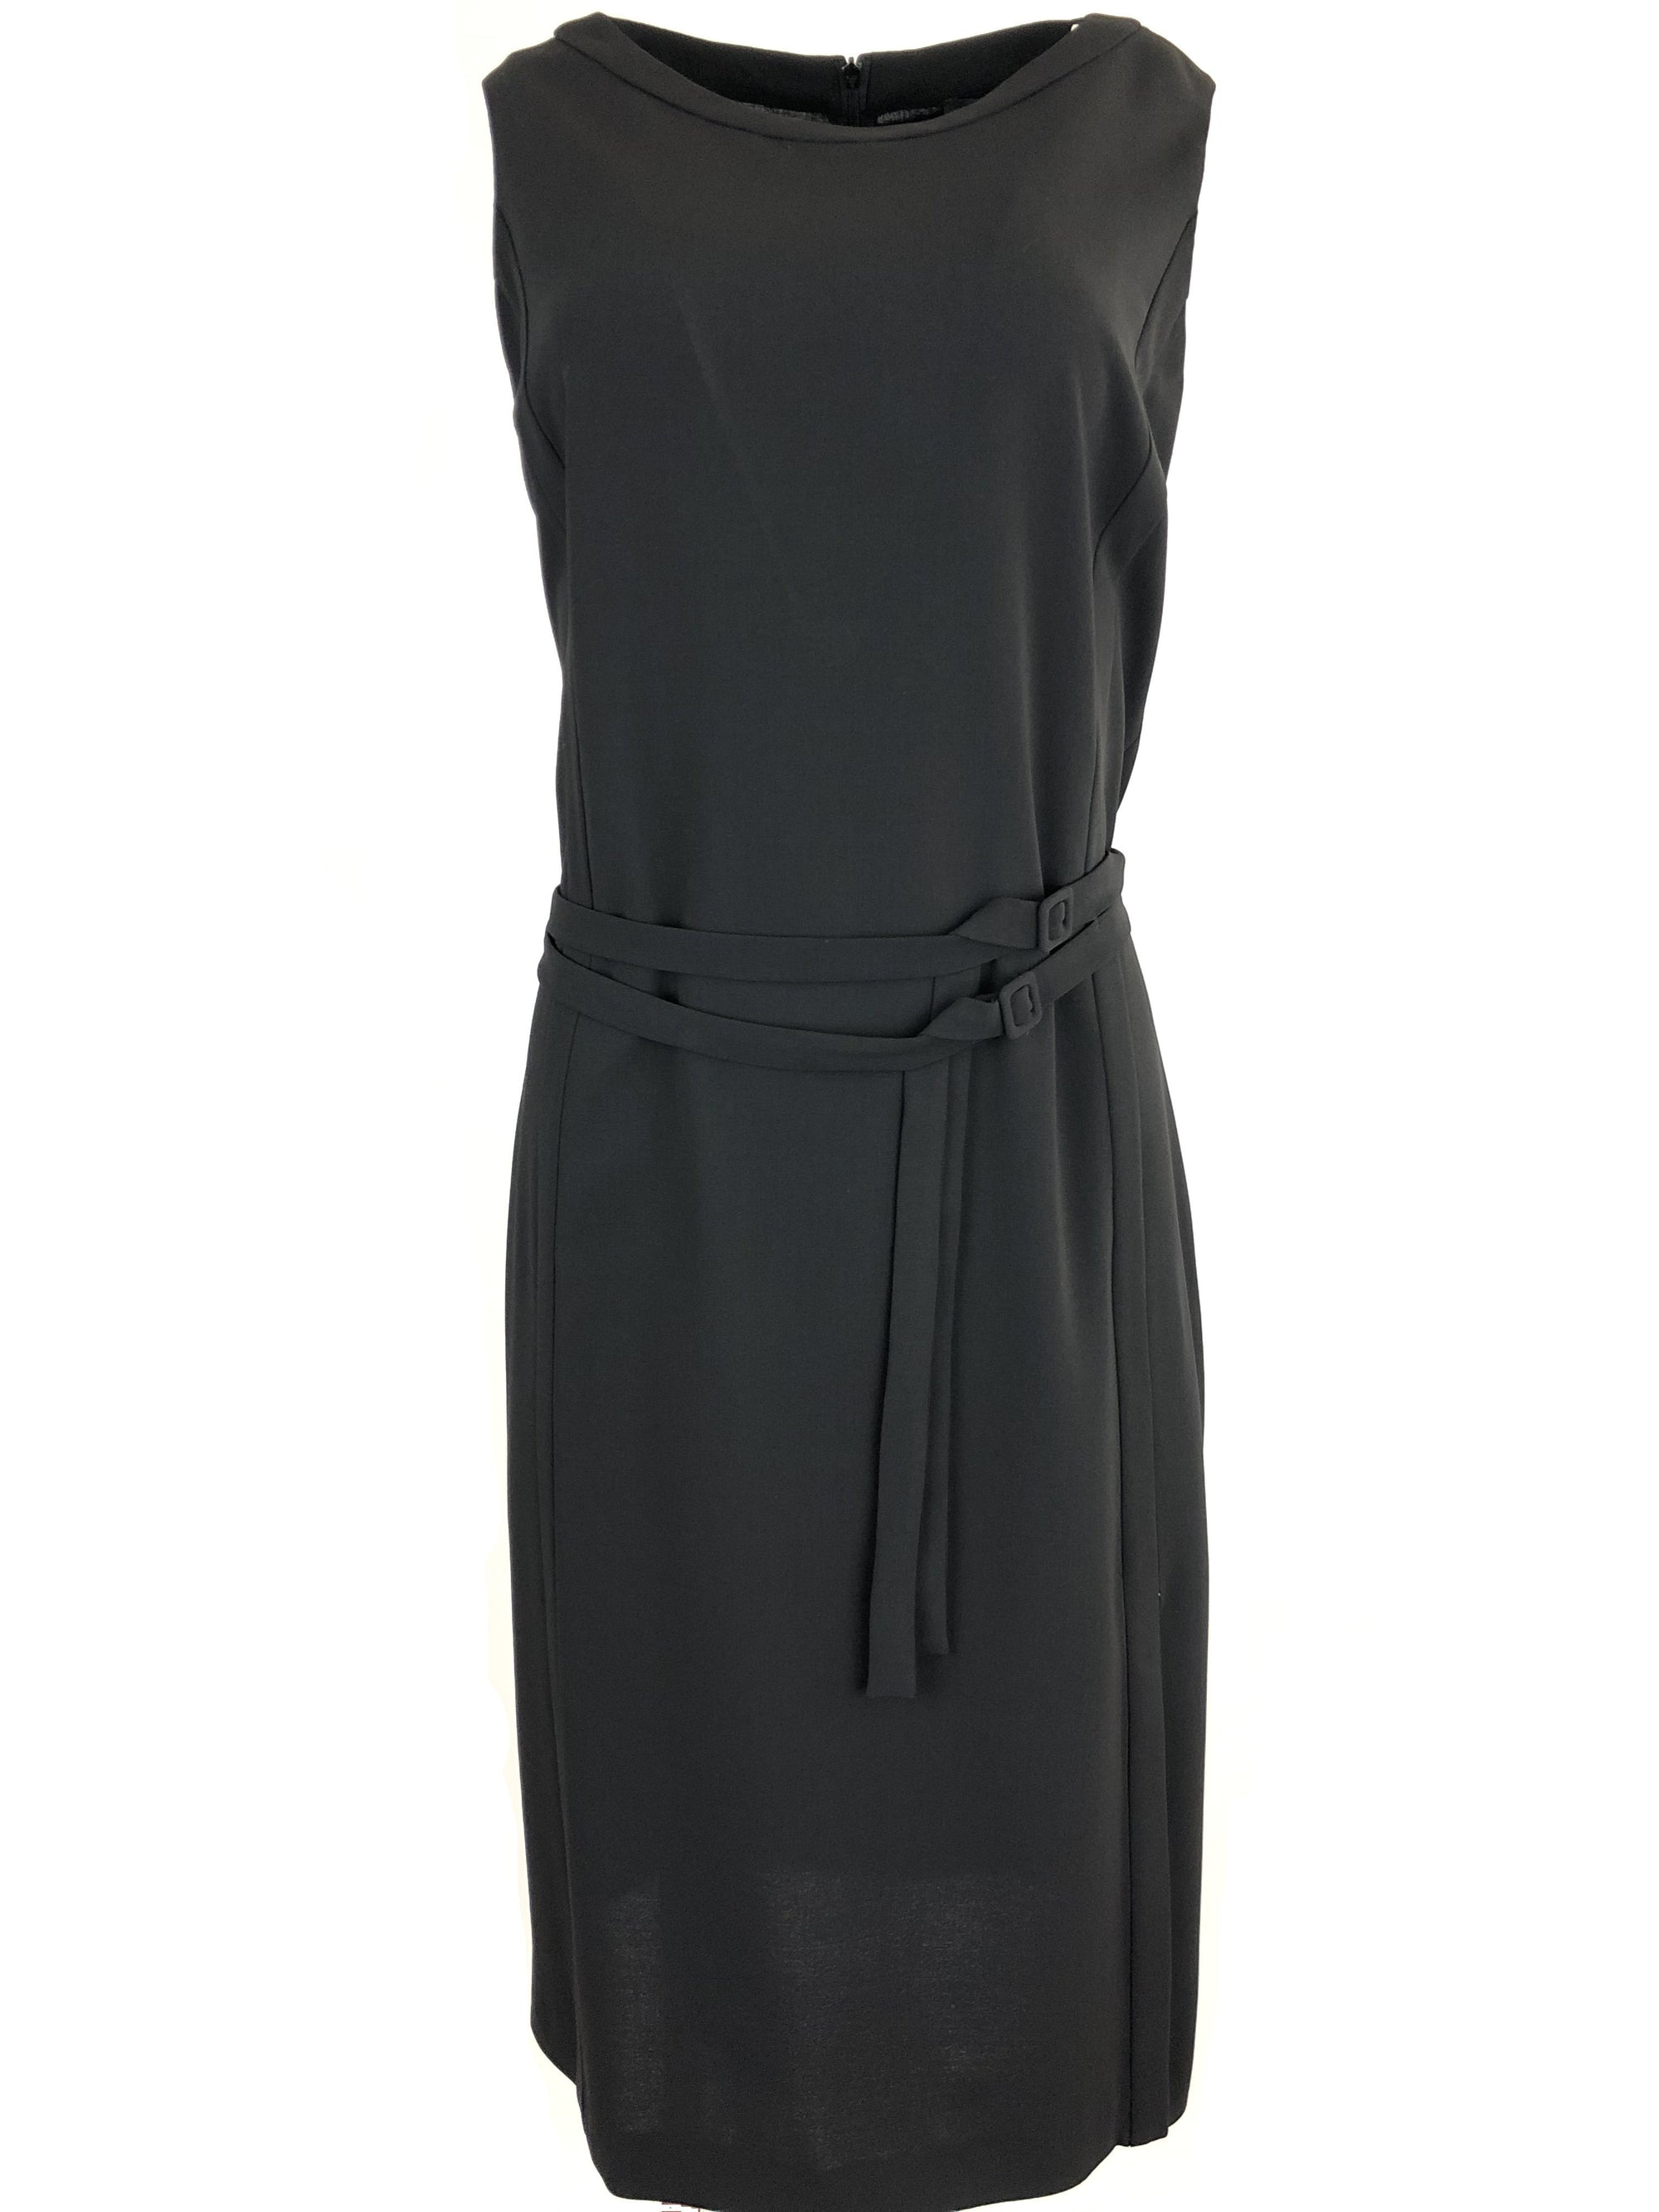 CIVIDINI BLACK ELEGANT DRESS